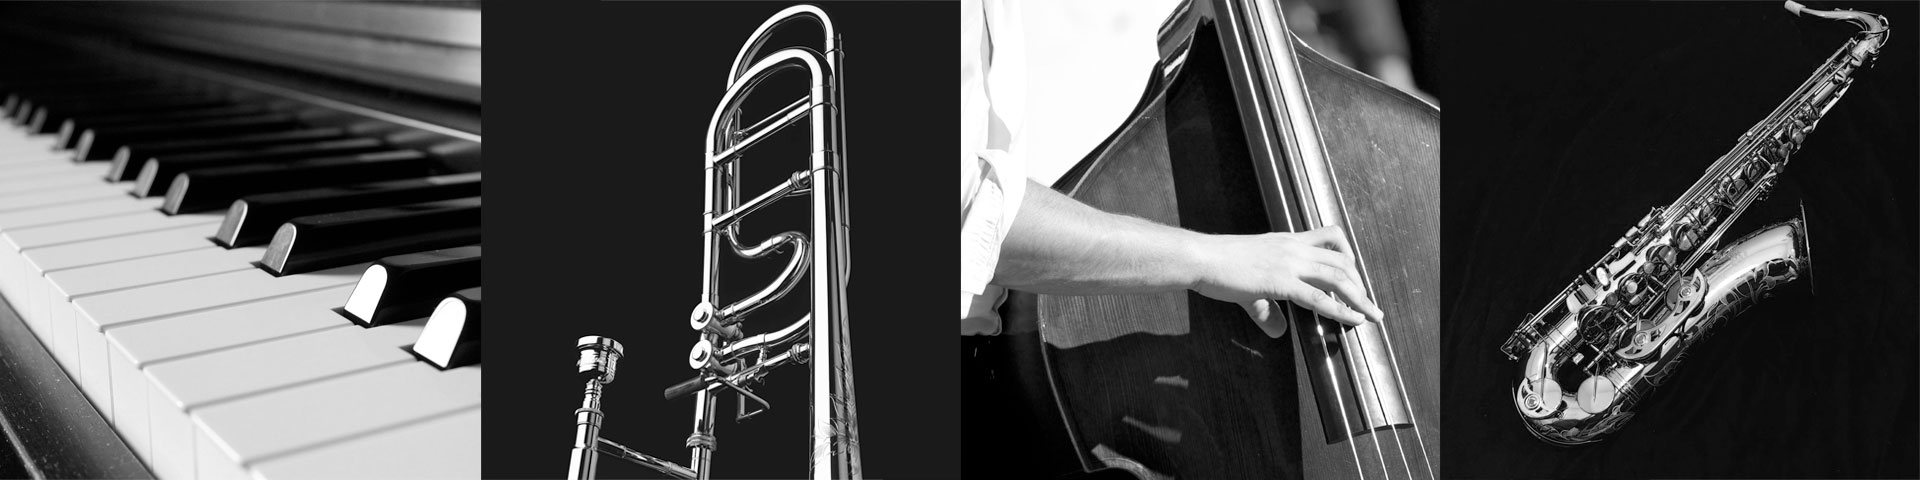 Collage of jazz instruments: piano, trombone, standup bass, and saxaphone